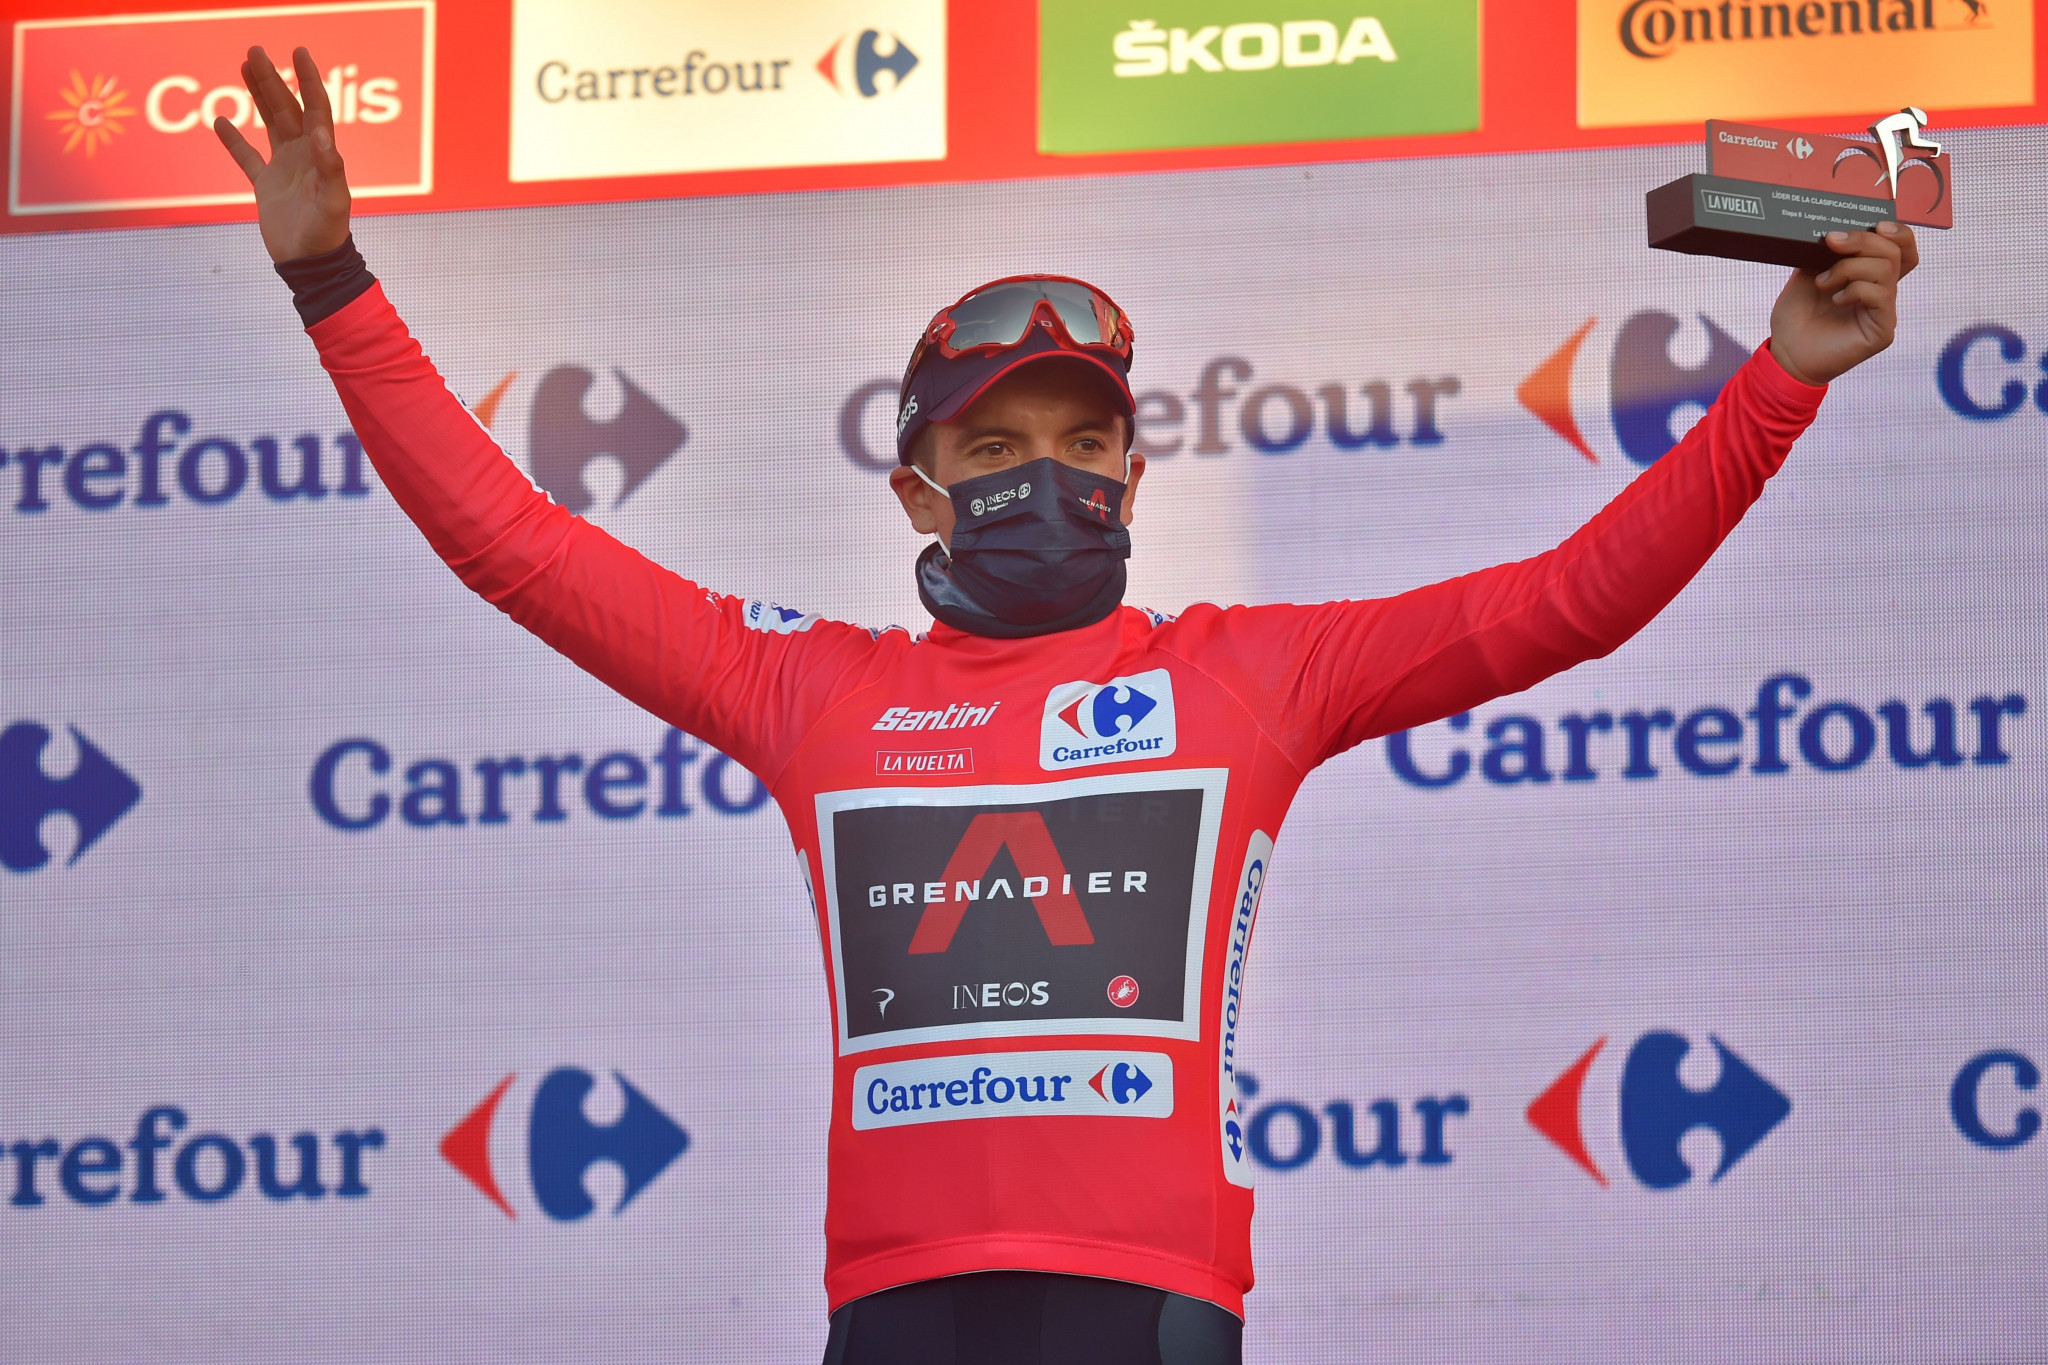 Richard Carapaz claimed the race leader's red jersey ©Getty Images